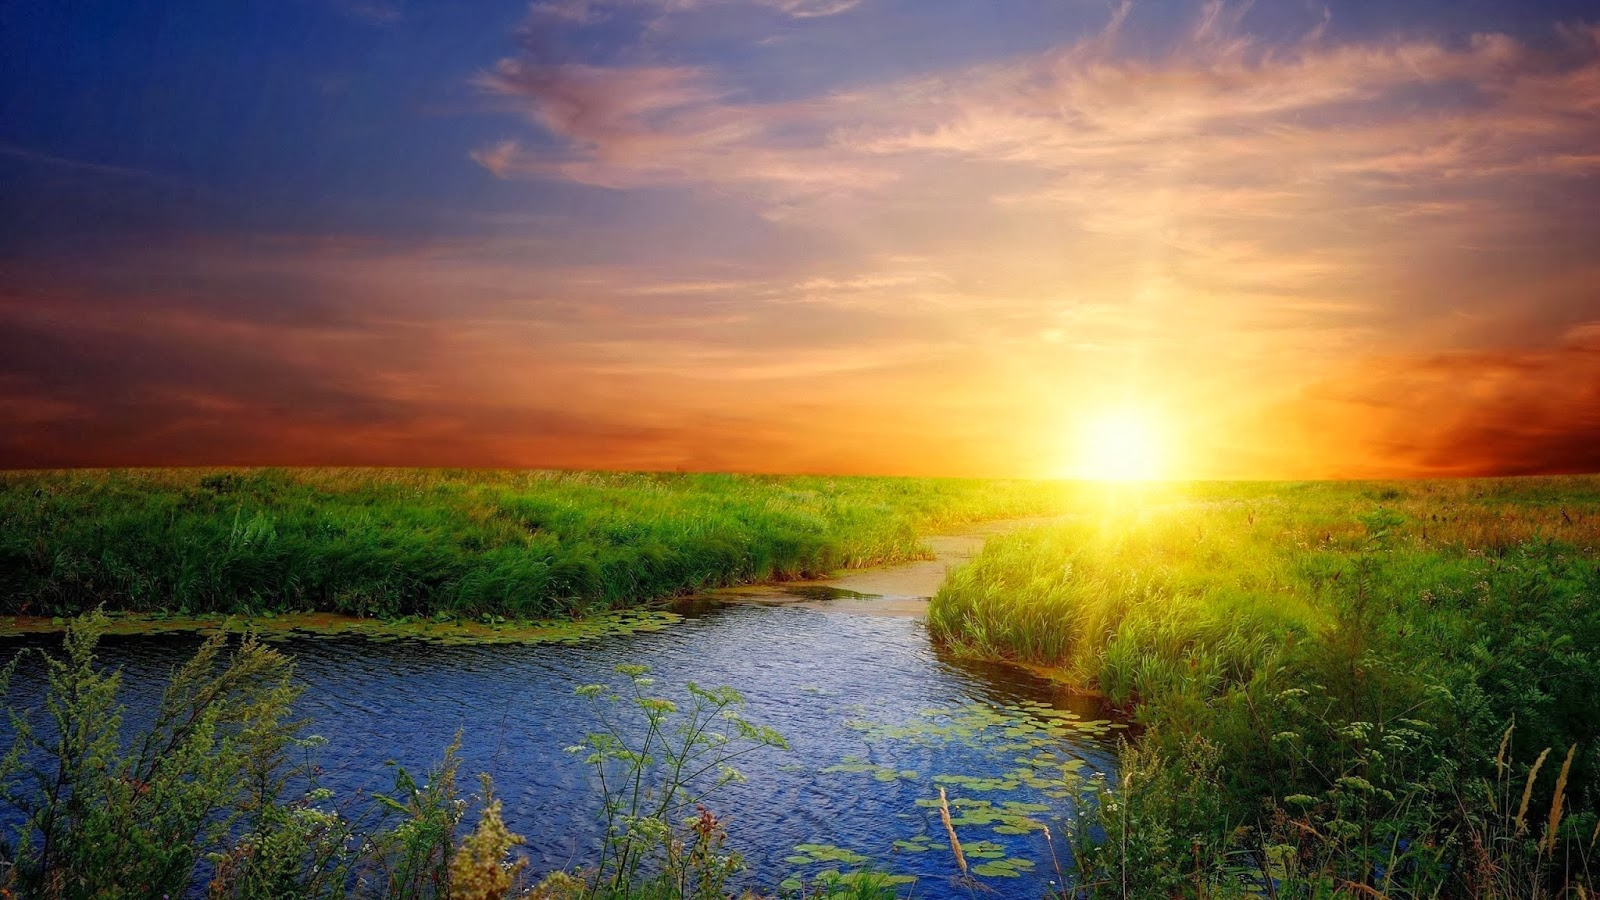 Sun Rise Wallpaper Free Download